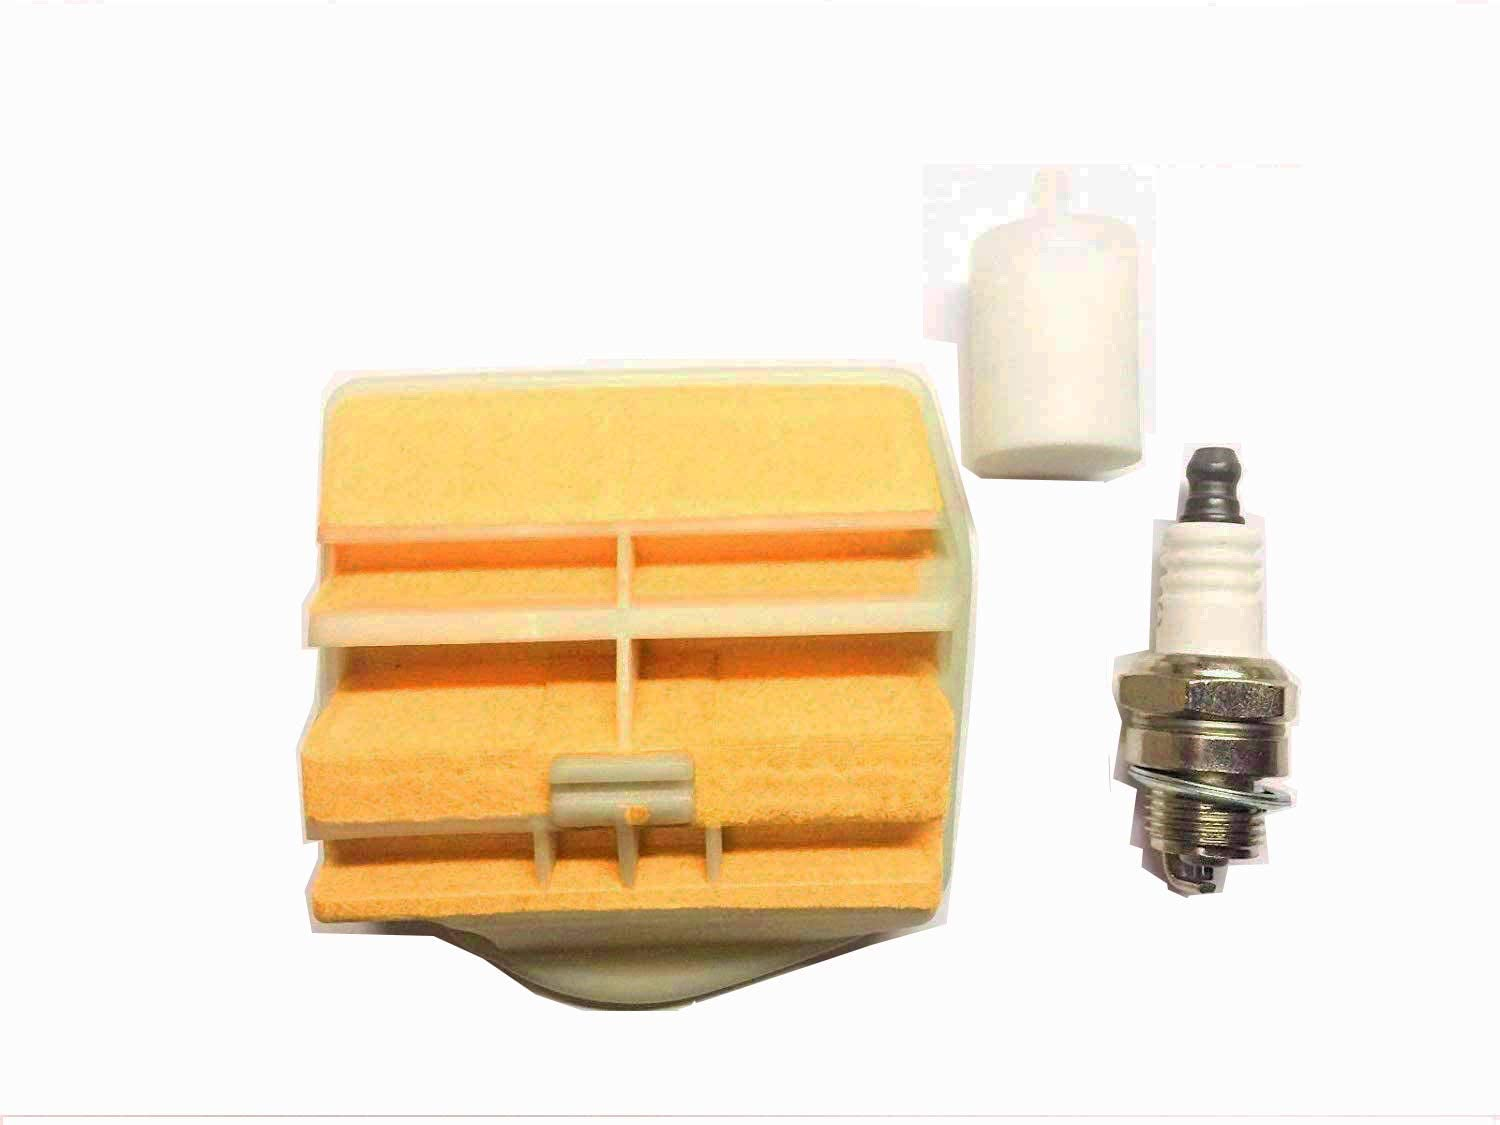 NEW AIR FILTER FUEL FILTER /& SPARK PLUG JONSERED 2250 2245 TUNE UP KIT